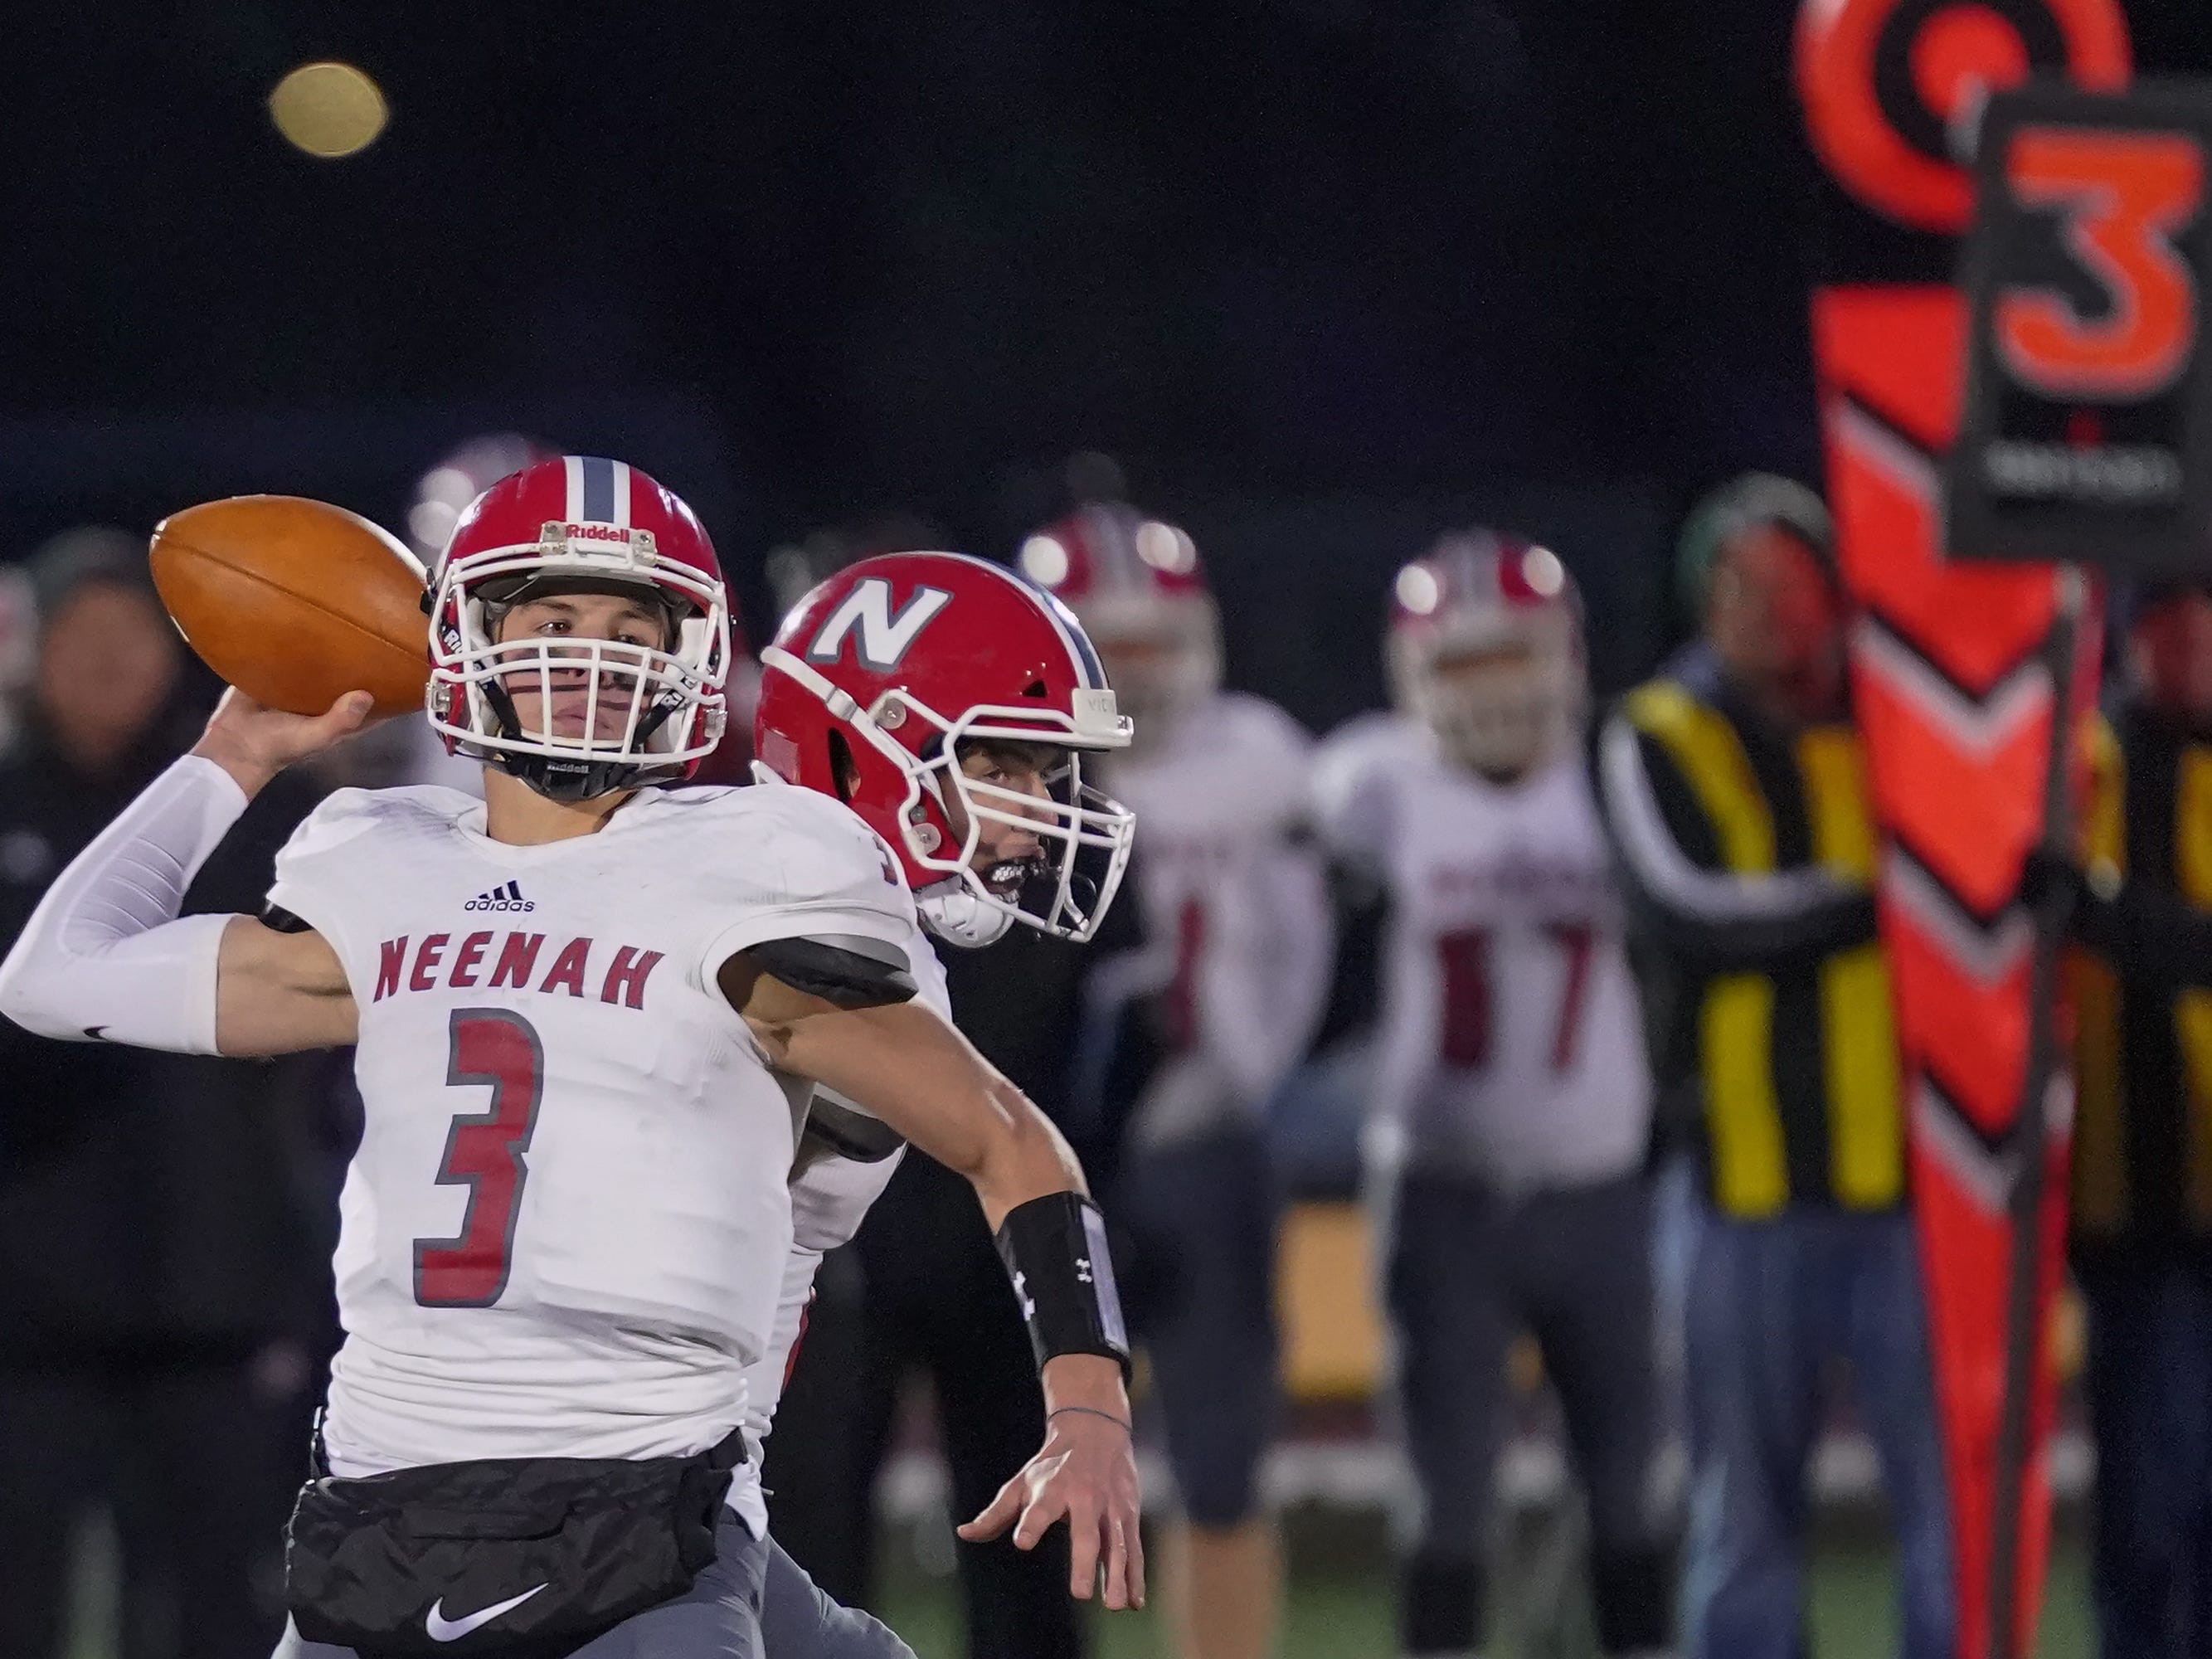 Neenah quarterback Sam Dietrich (3) drops back to pass. The Oshkosh West Wildcats hosted the Neenah Rockets in an FVA-South conference matchup Friday evening, October 12, 2018 at J. J. Keller Field at Titan Stadium.